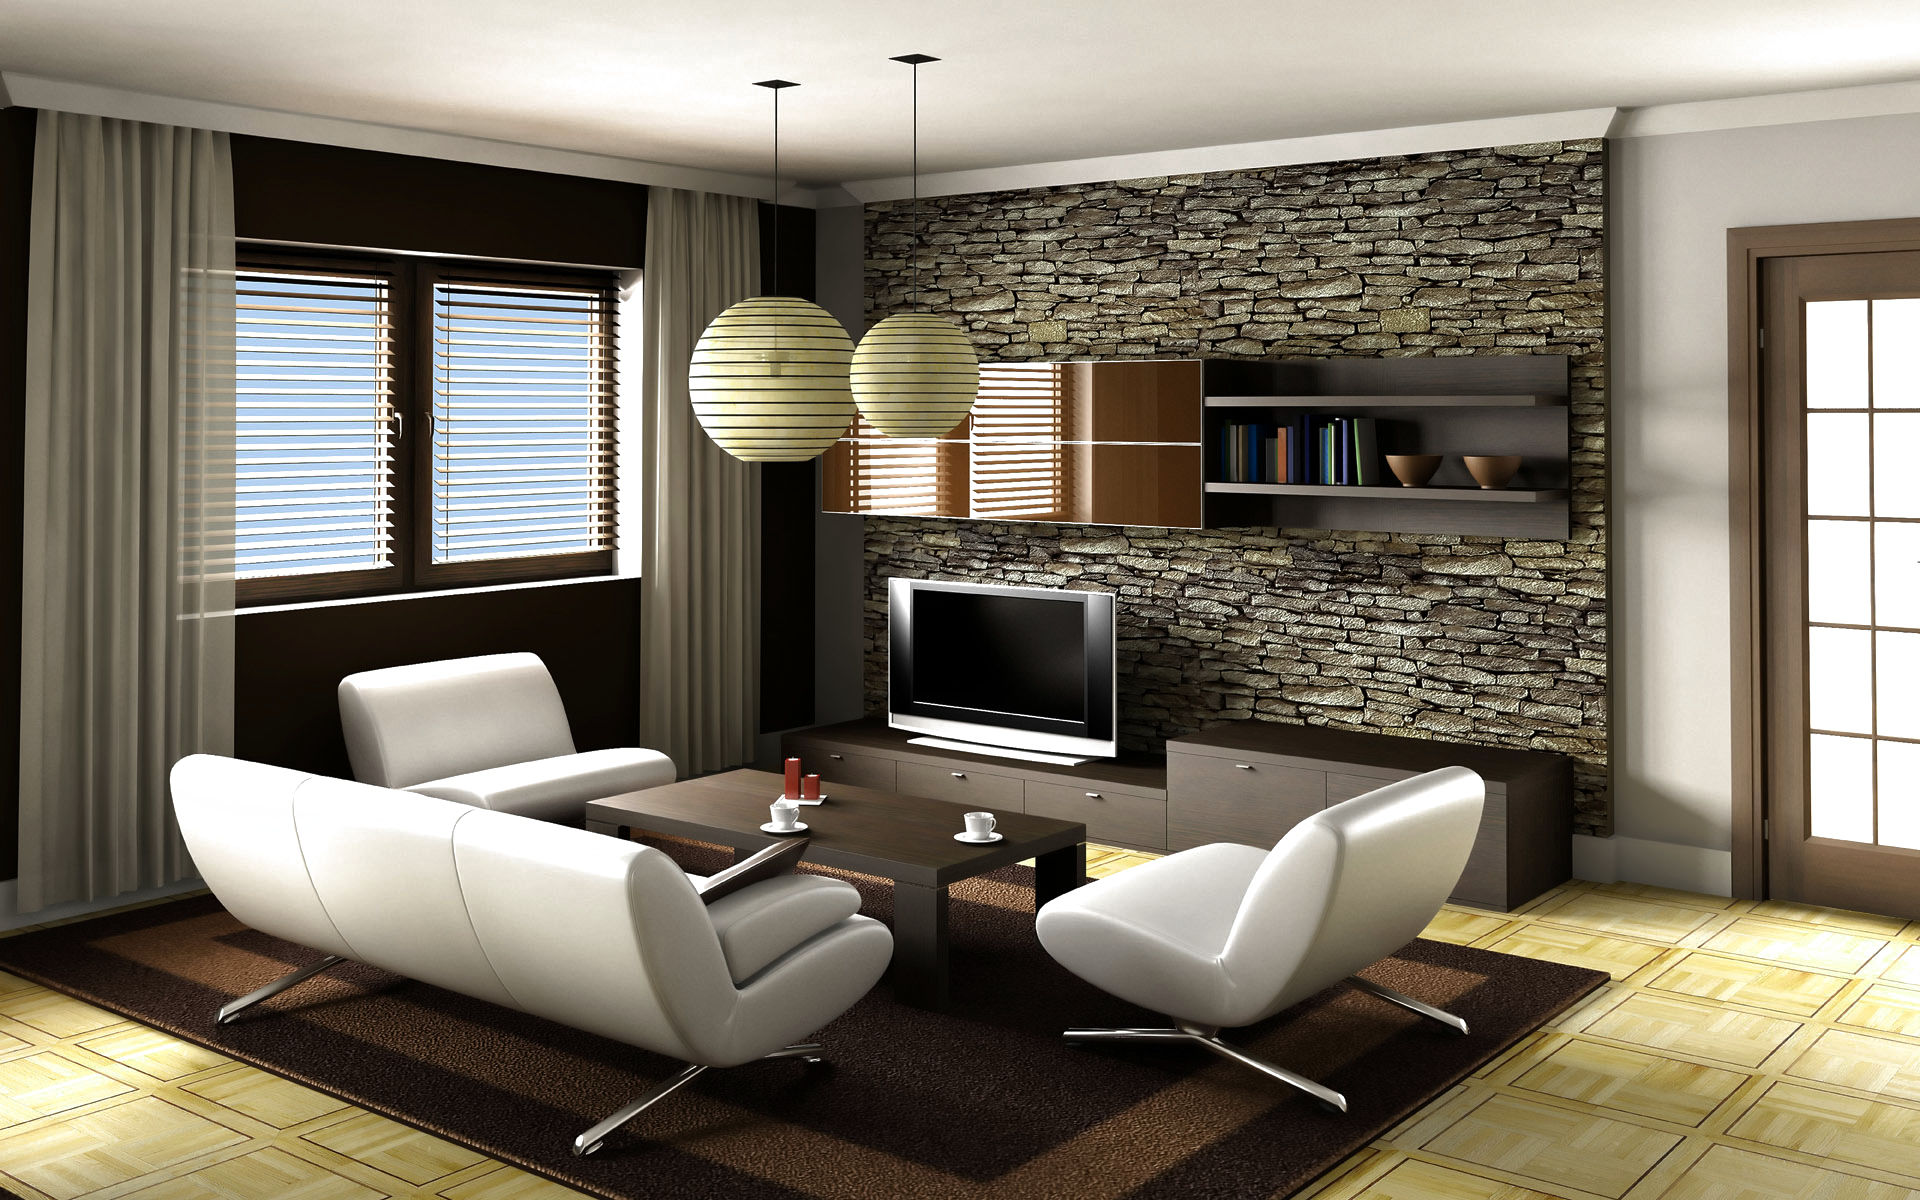 16 modern living room furniture ideas design hgnv com for Ideas of living room furniture